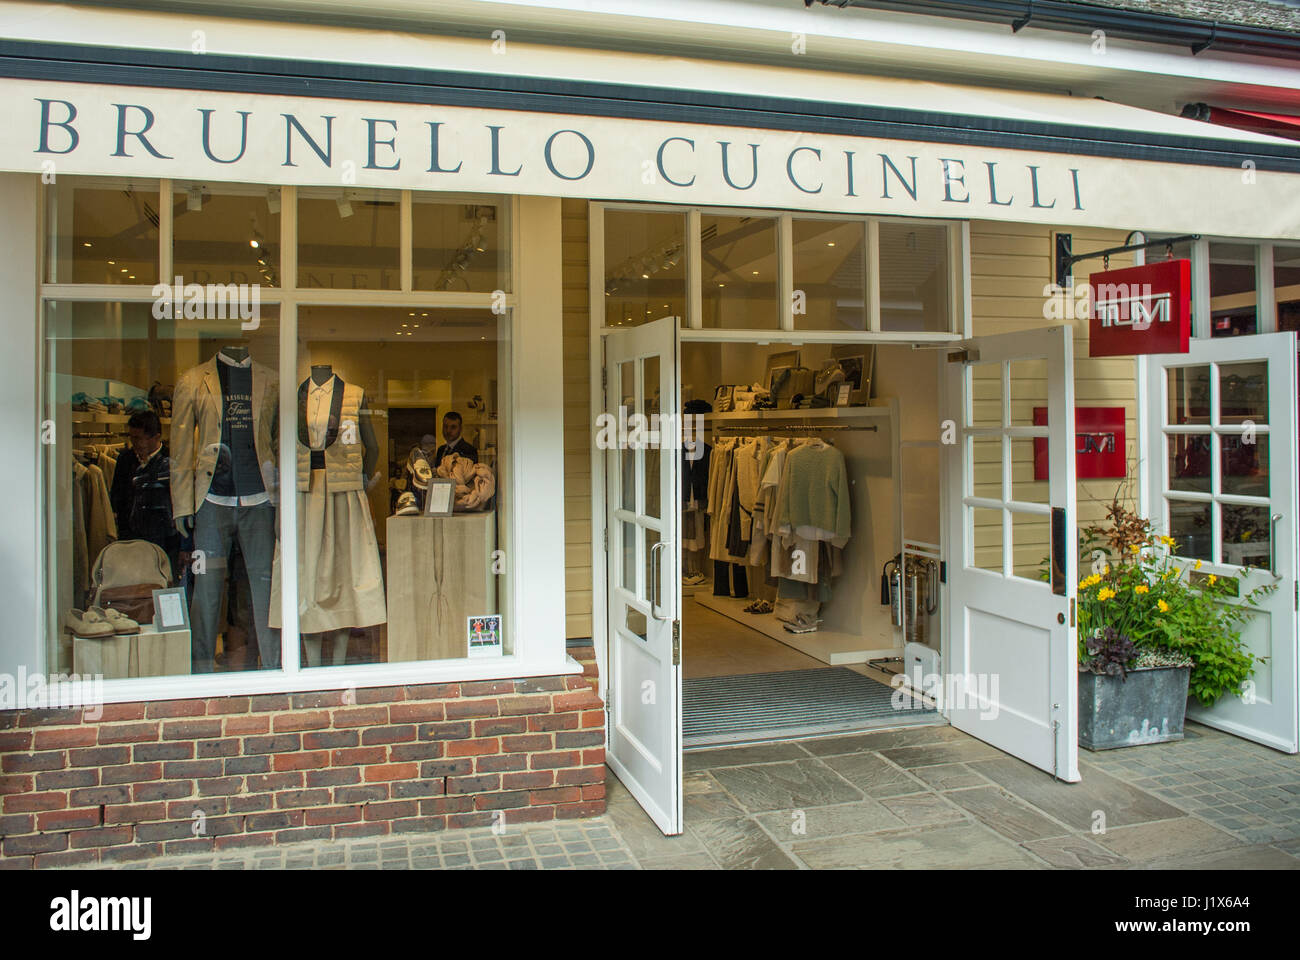 united states best sneakers reliable quality Brunello Cucinelli Stock Photos & Brunello Cucinelli Stock ...